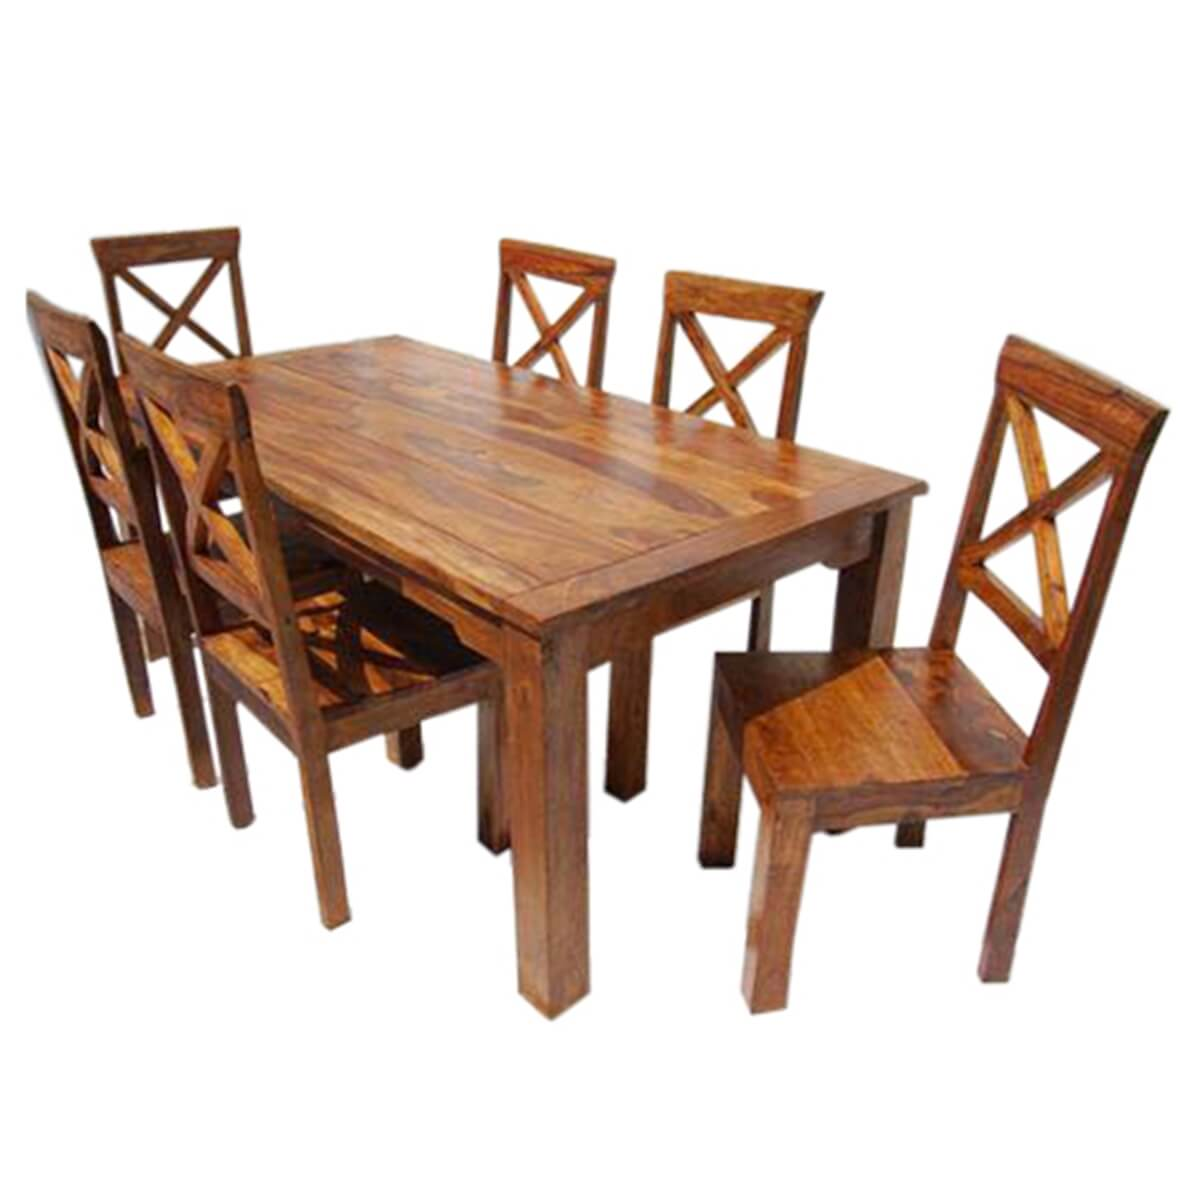 Rustic Solid Wood Oklahoma Dining Table amp Chair Set : 13513 from www.sierralivingconcepts.com size 1200 x 1200 jpeg 297kB